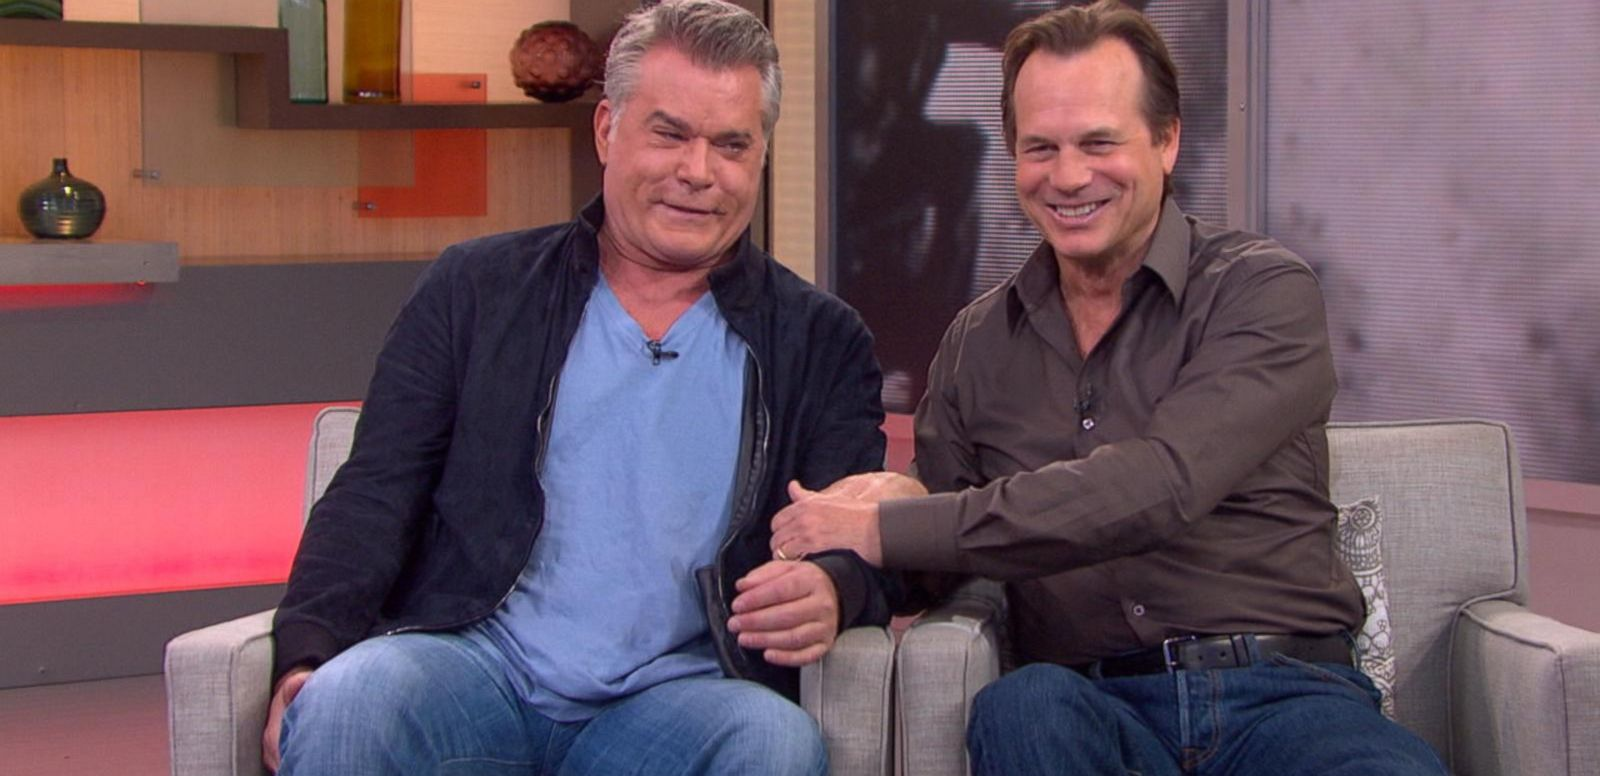 VIDEO: Ray Liotta, Bill Paxton Star in 'Texas Rising'